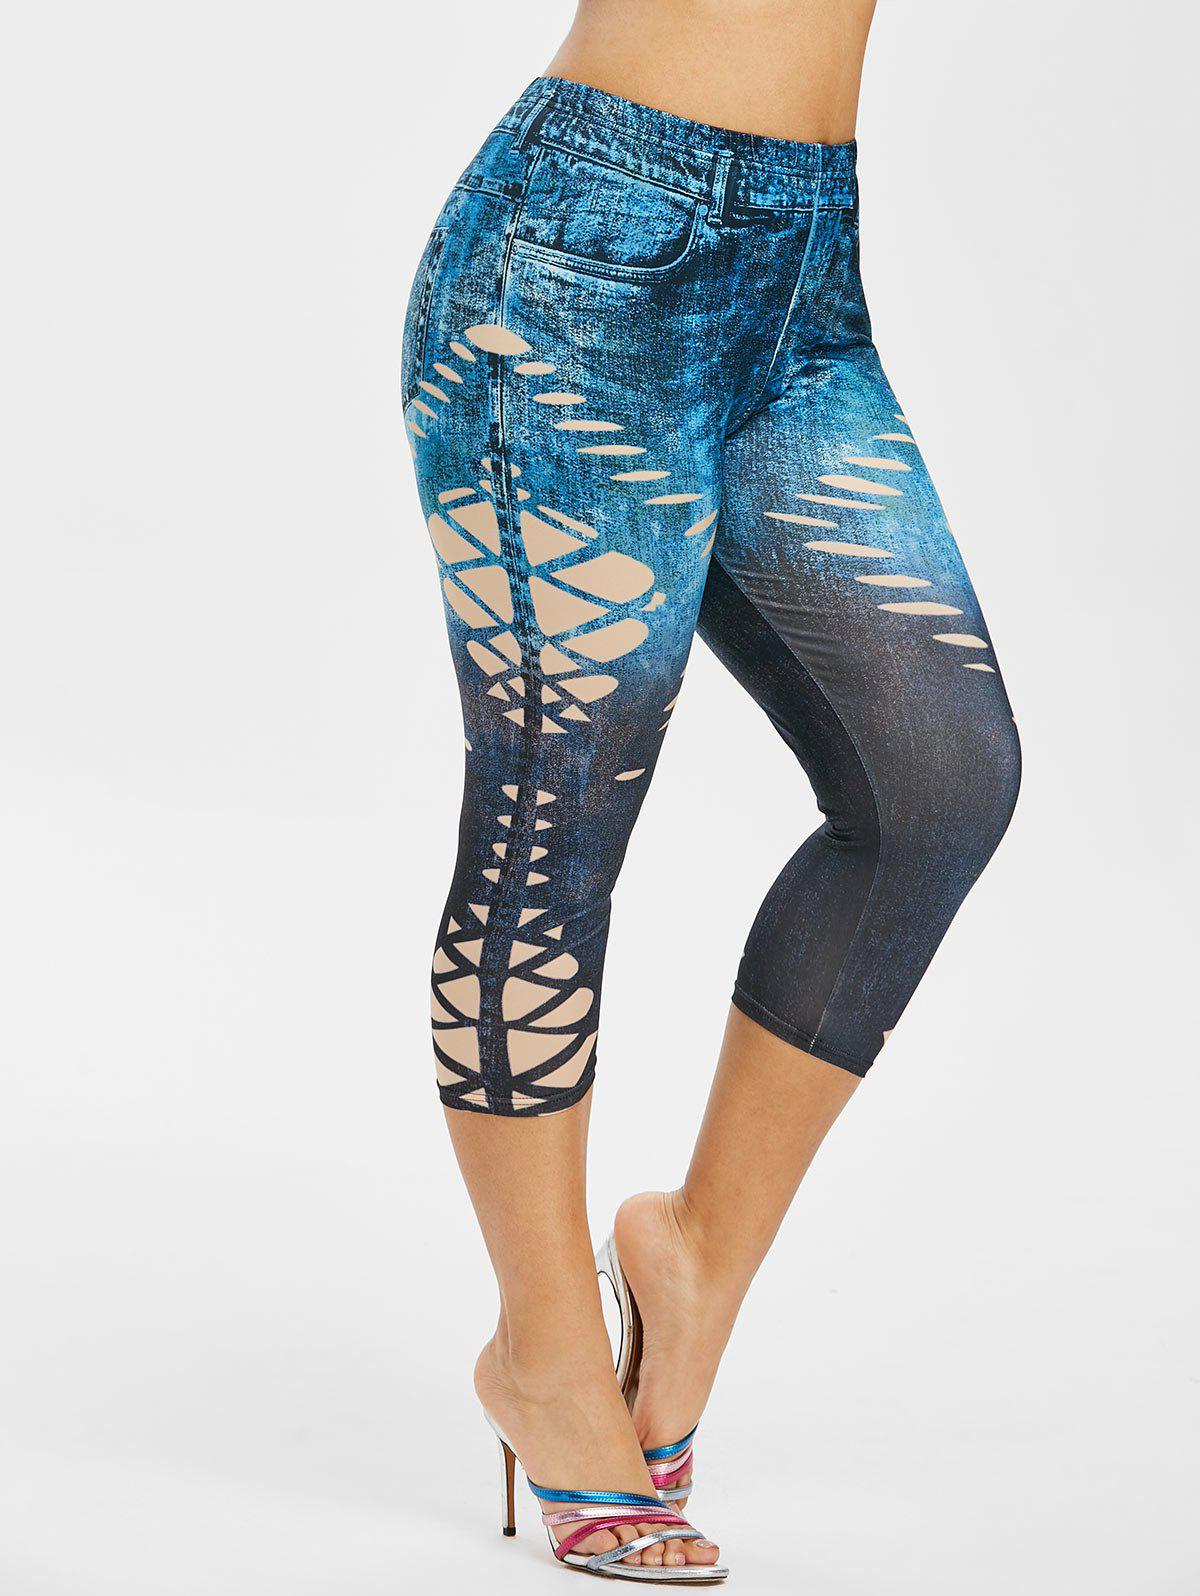 Fashion Plus Size 3D Print Tie Dye Capri Jeggings